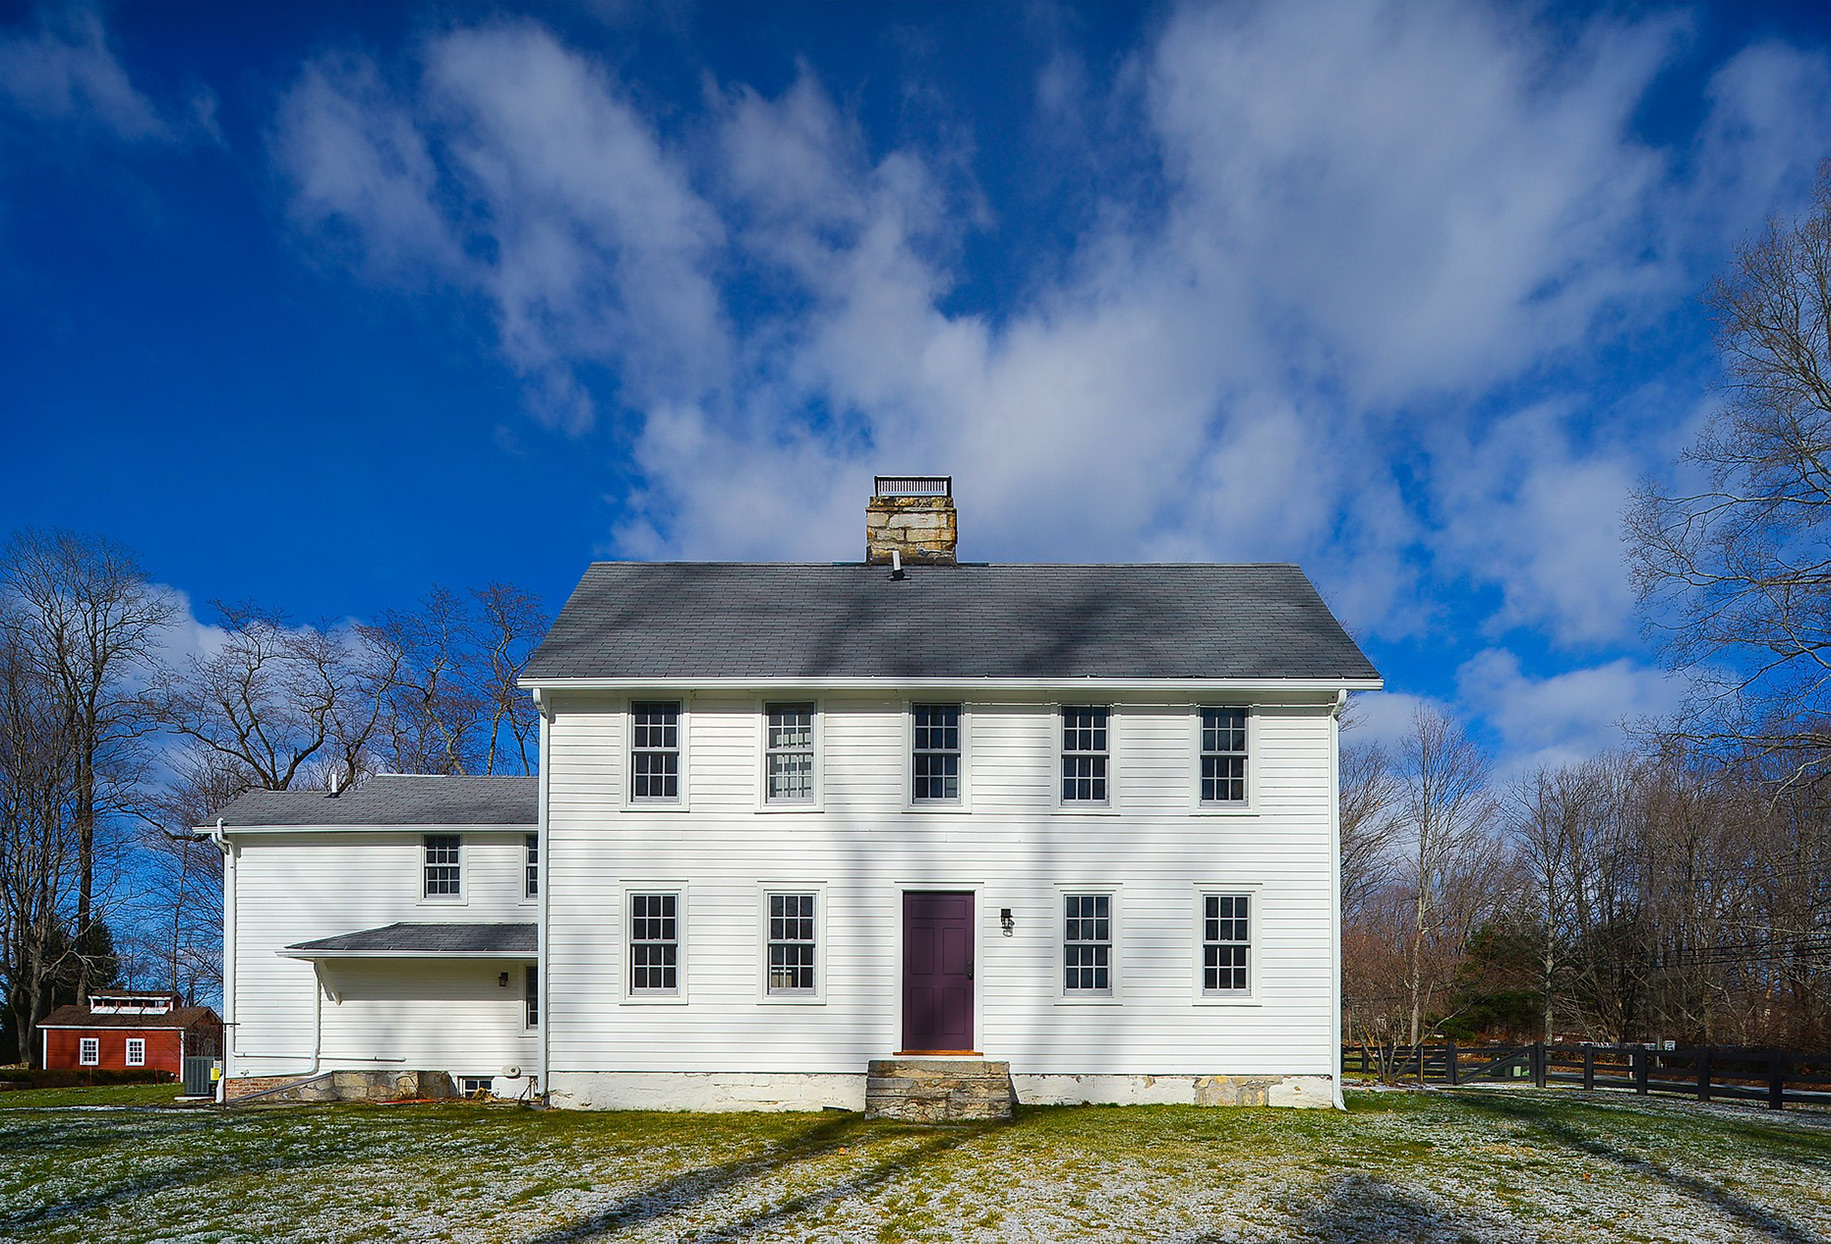 bright blue sky above saltbox house